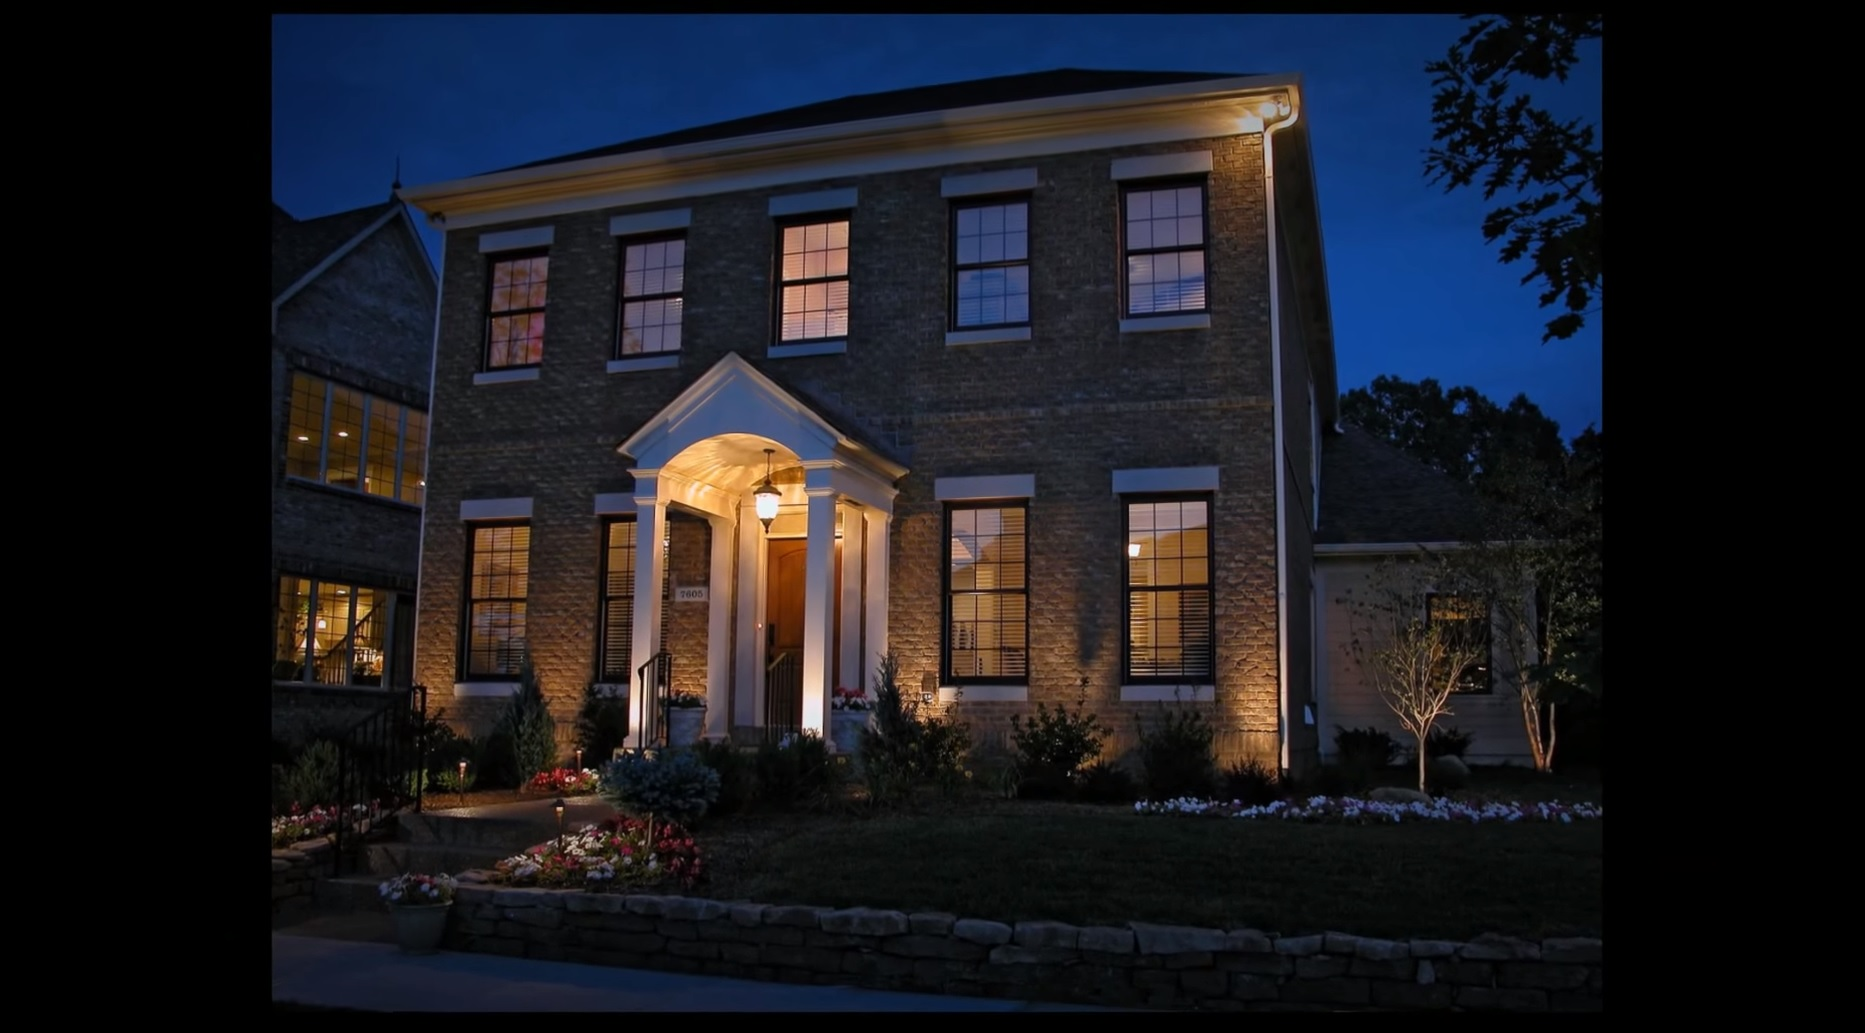 LED Outdoor Lighting in Greenville Thumbnail